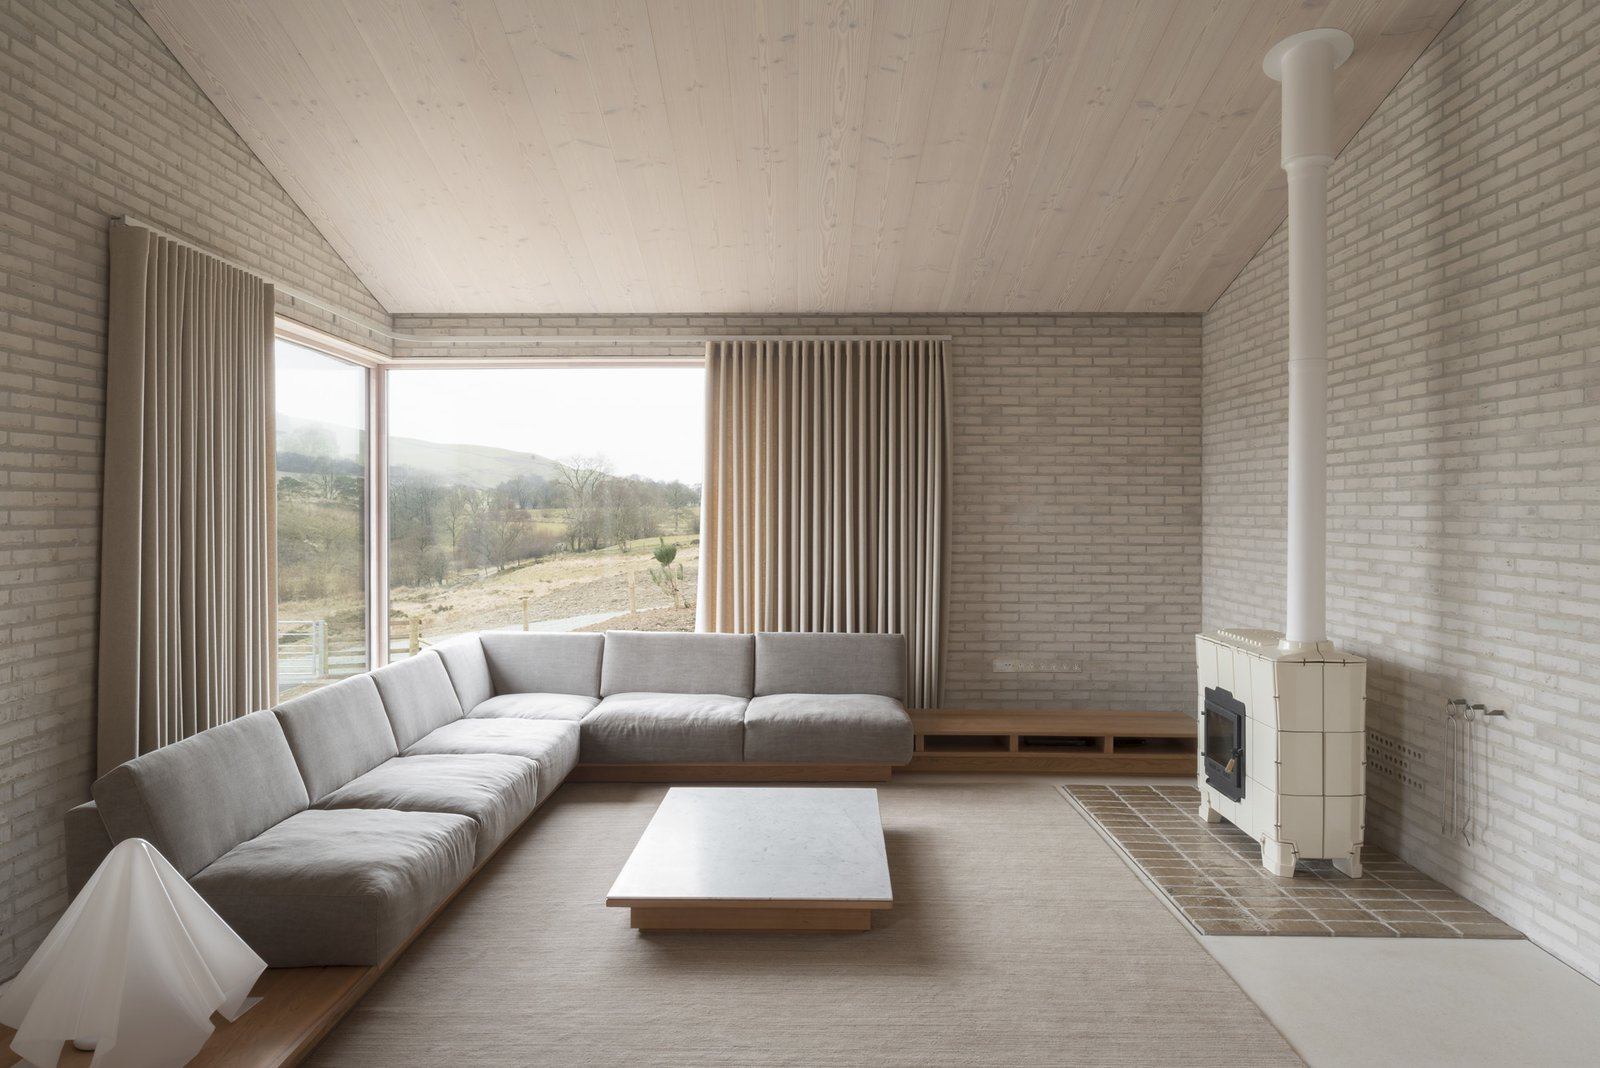 6 British Vacation Homes You Can Stay in That Were Designed by Renowned Architects - Photo 3 of 13